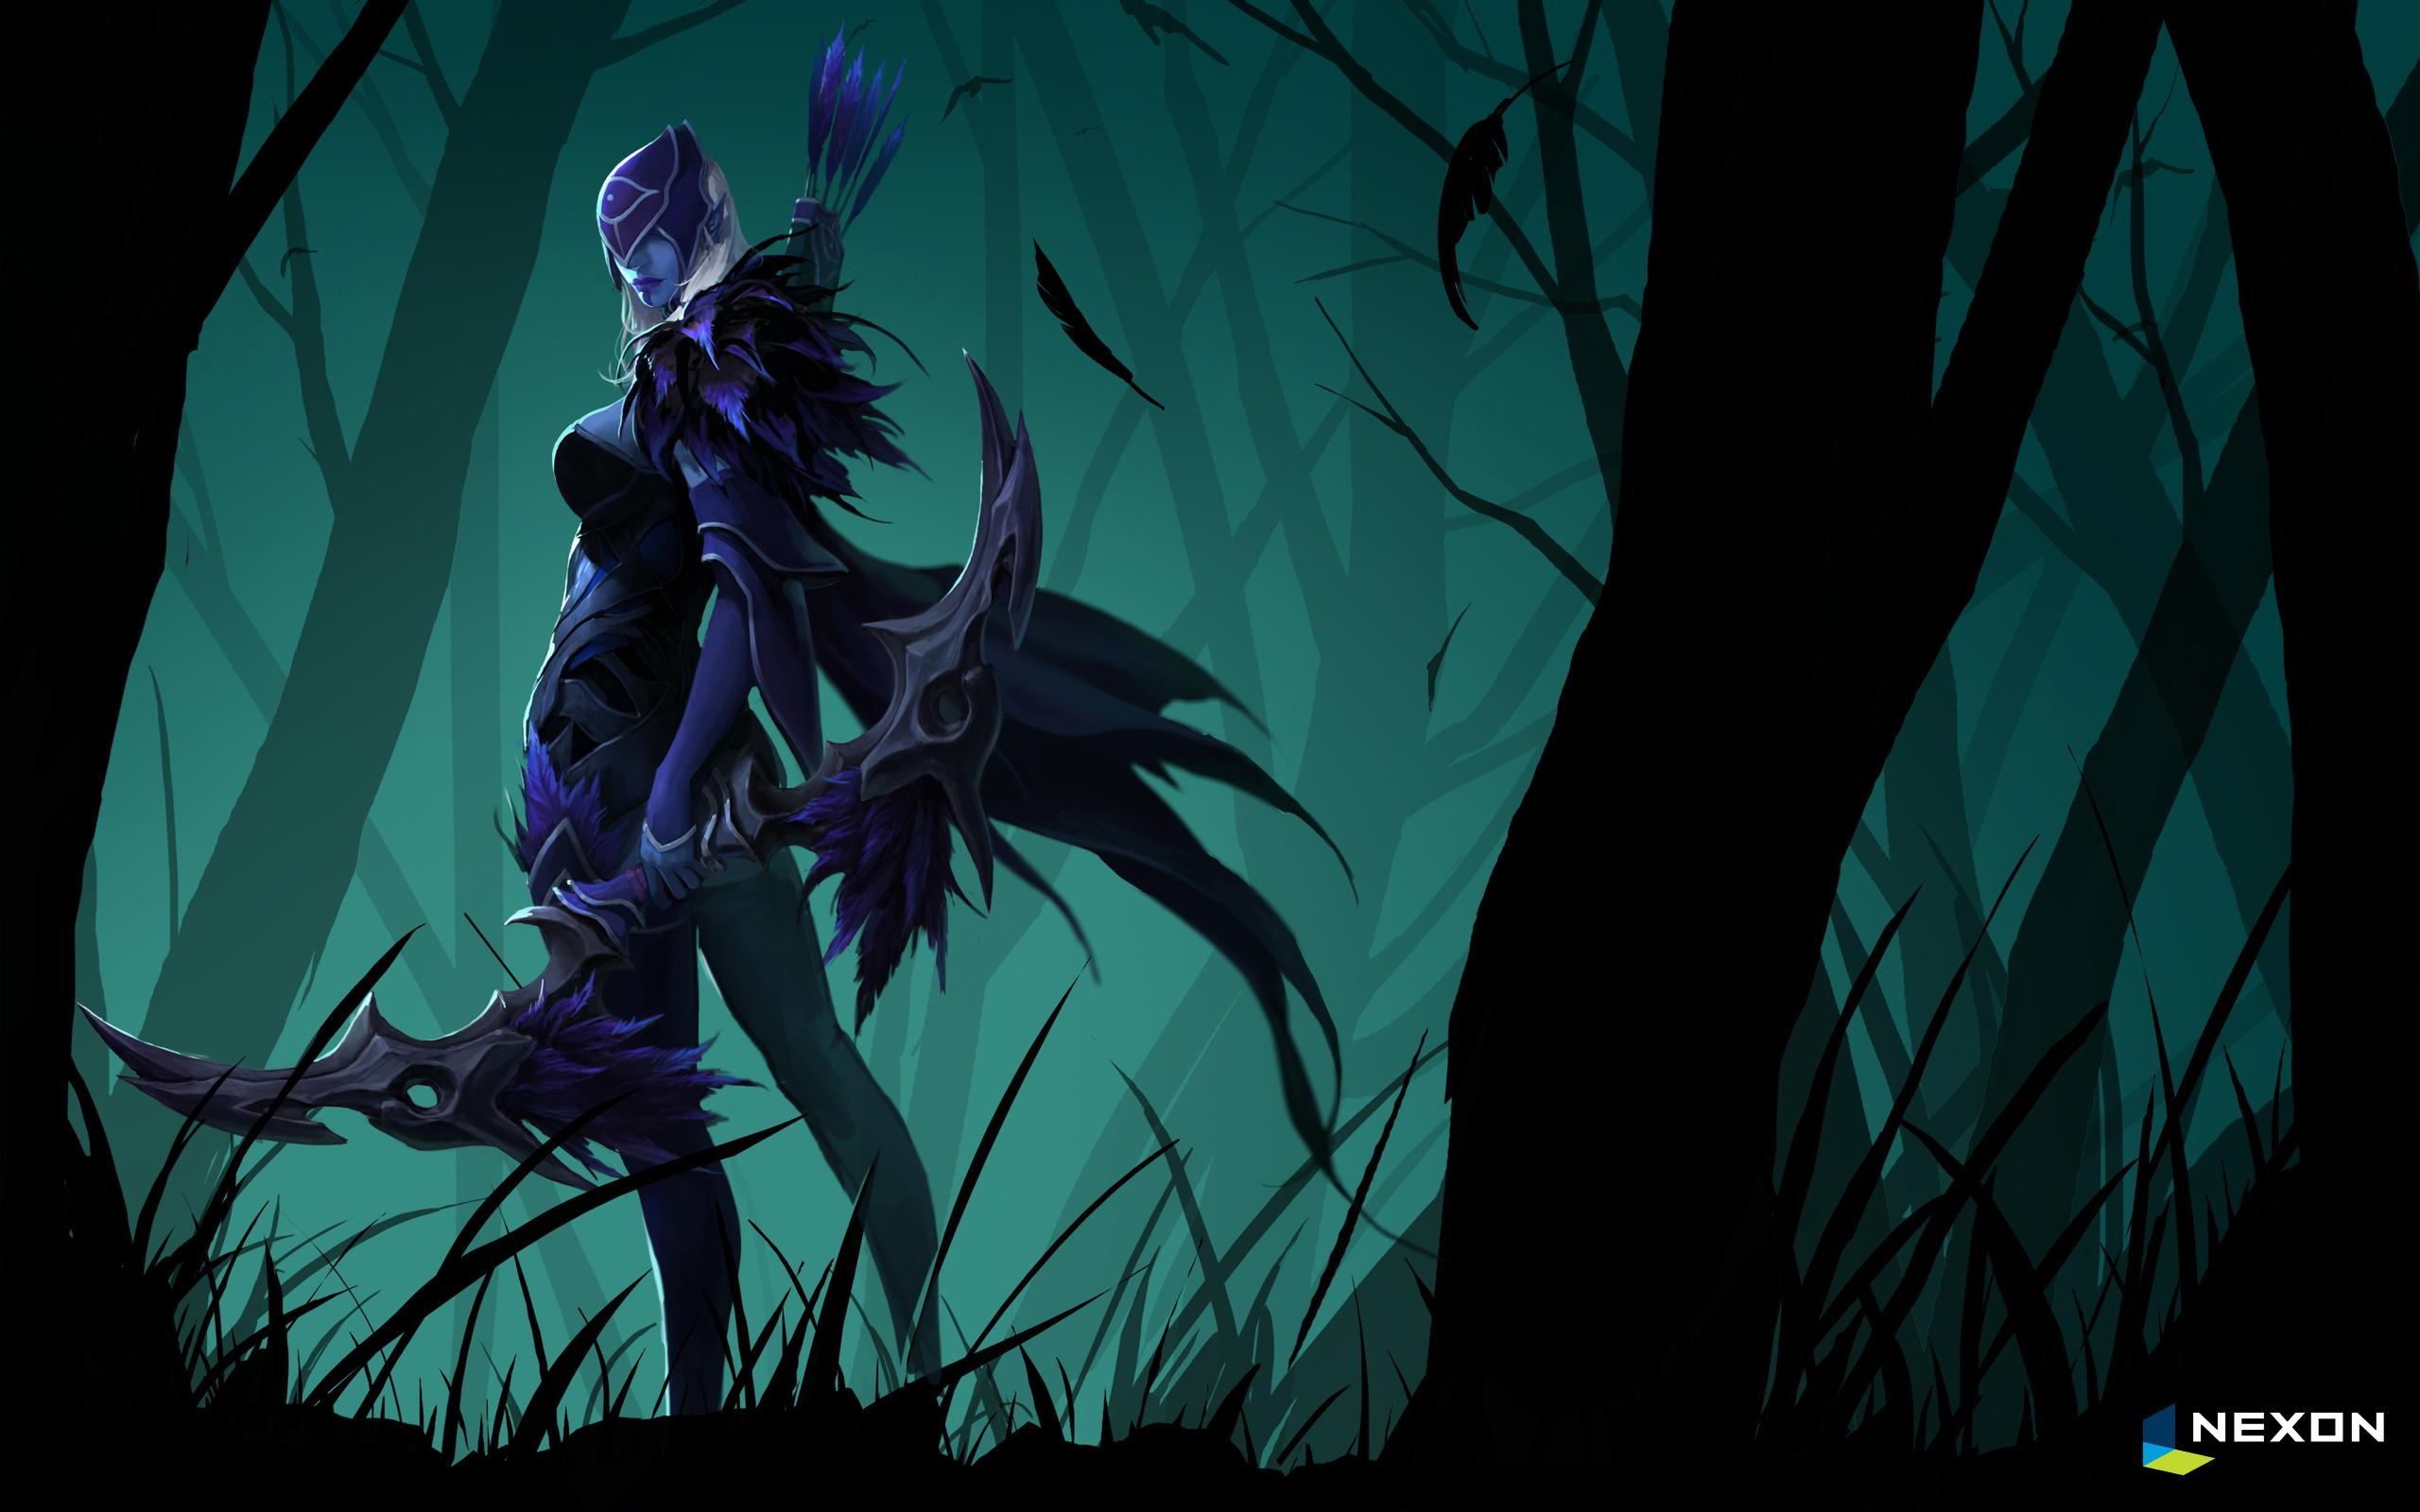 Drow Ranger Traxex Wallpapers Dota Wallpapers Desktop